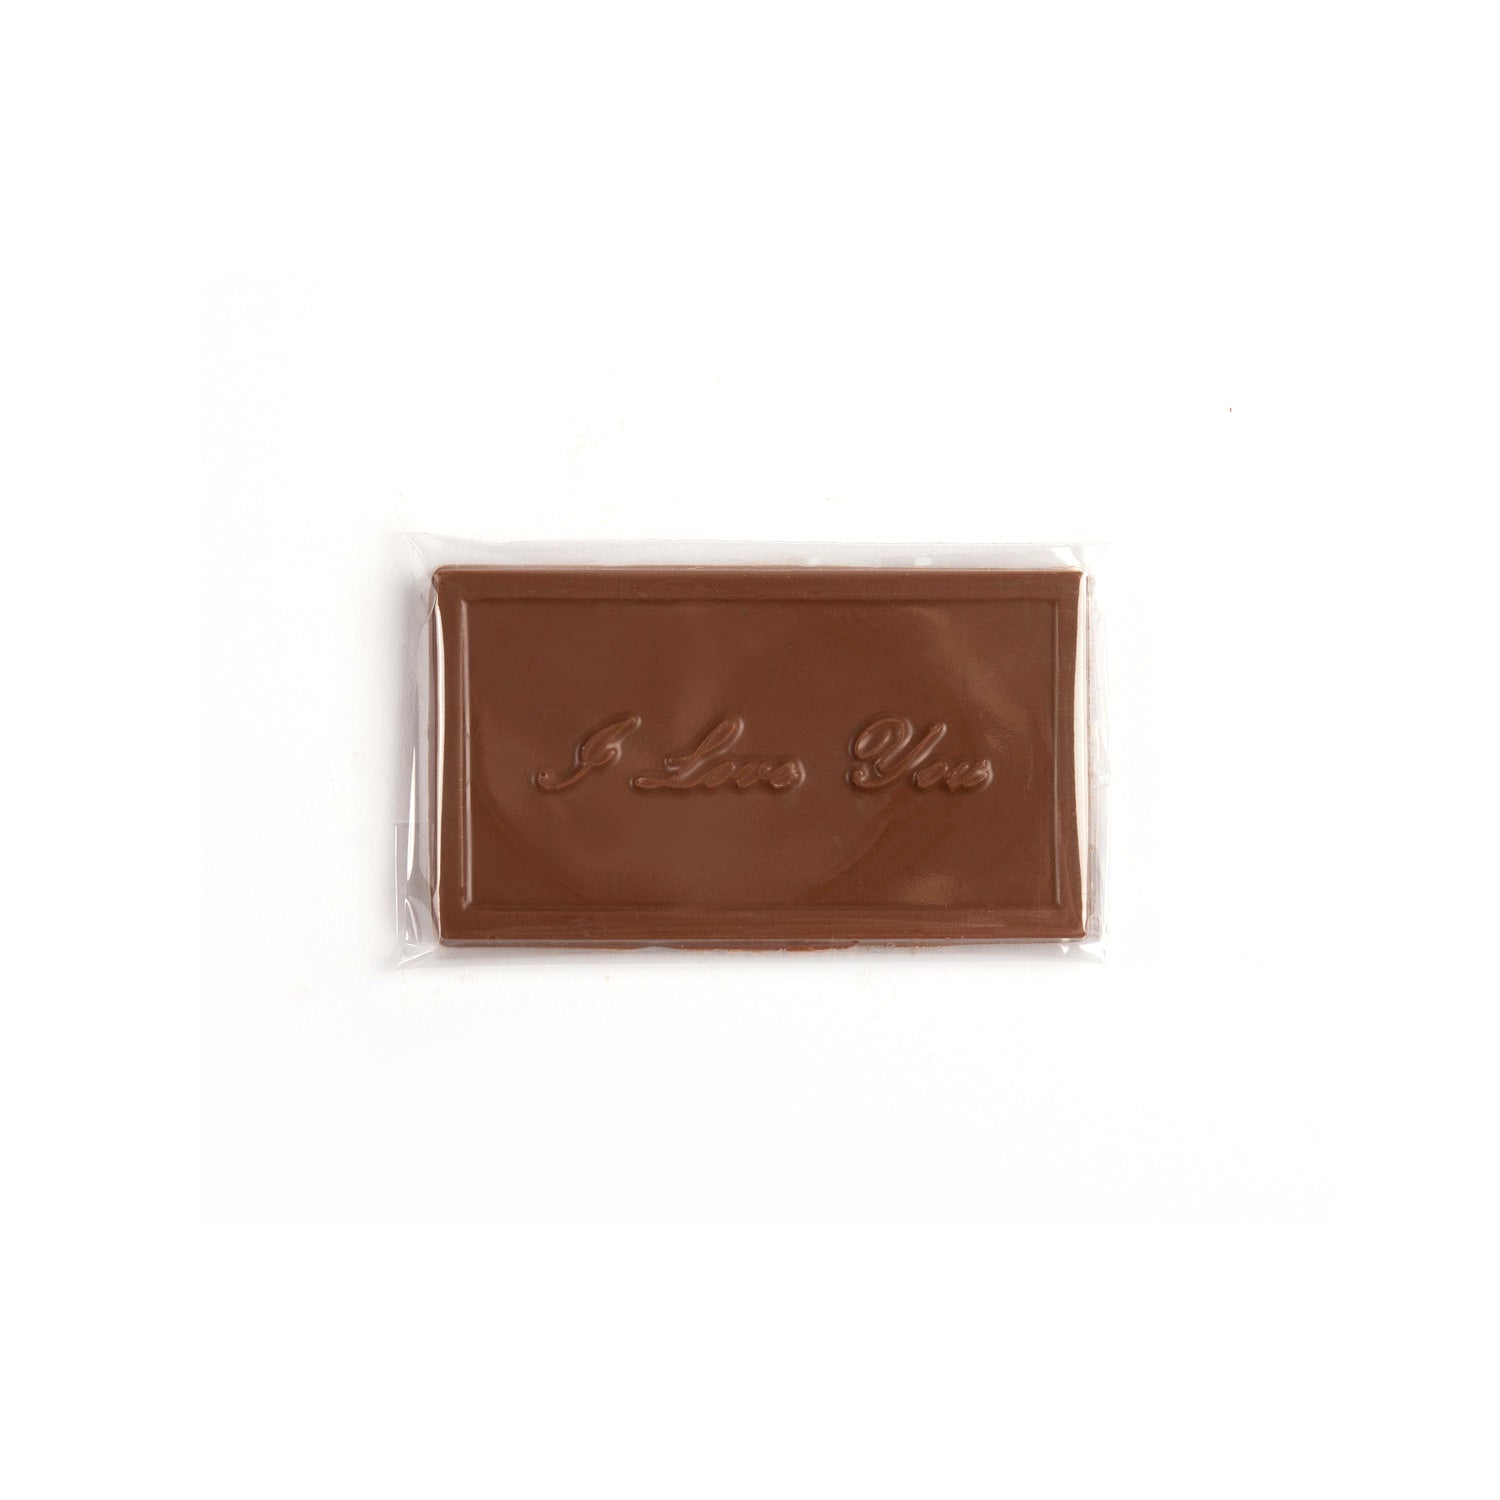 Image of milk chocolate bar with I love you in a script font.